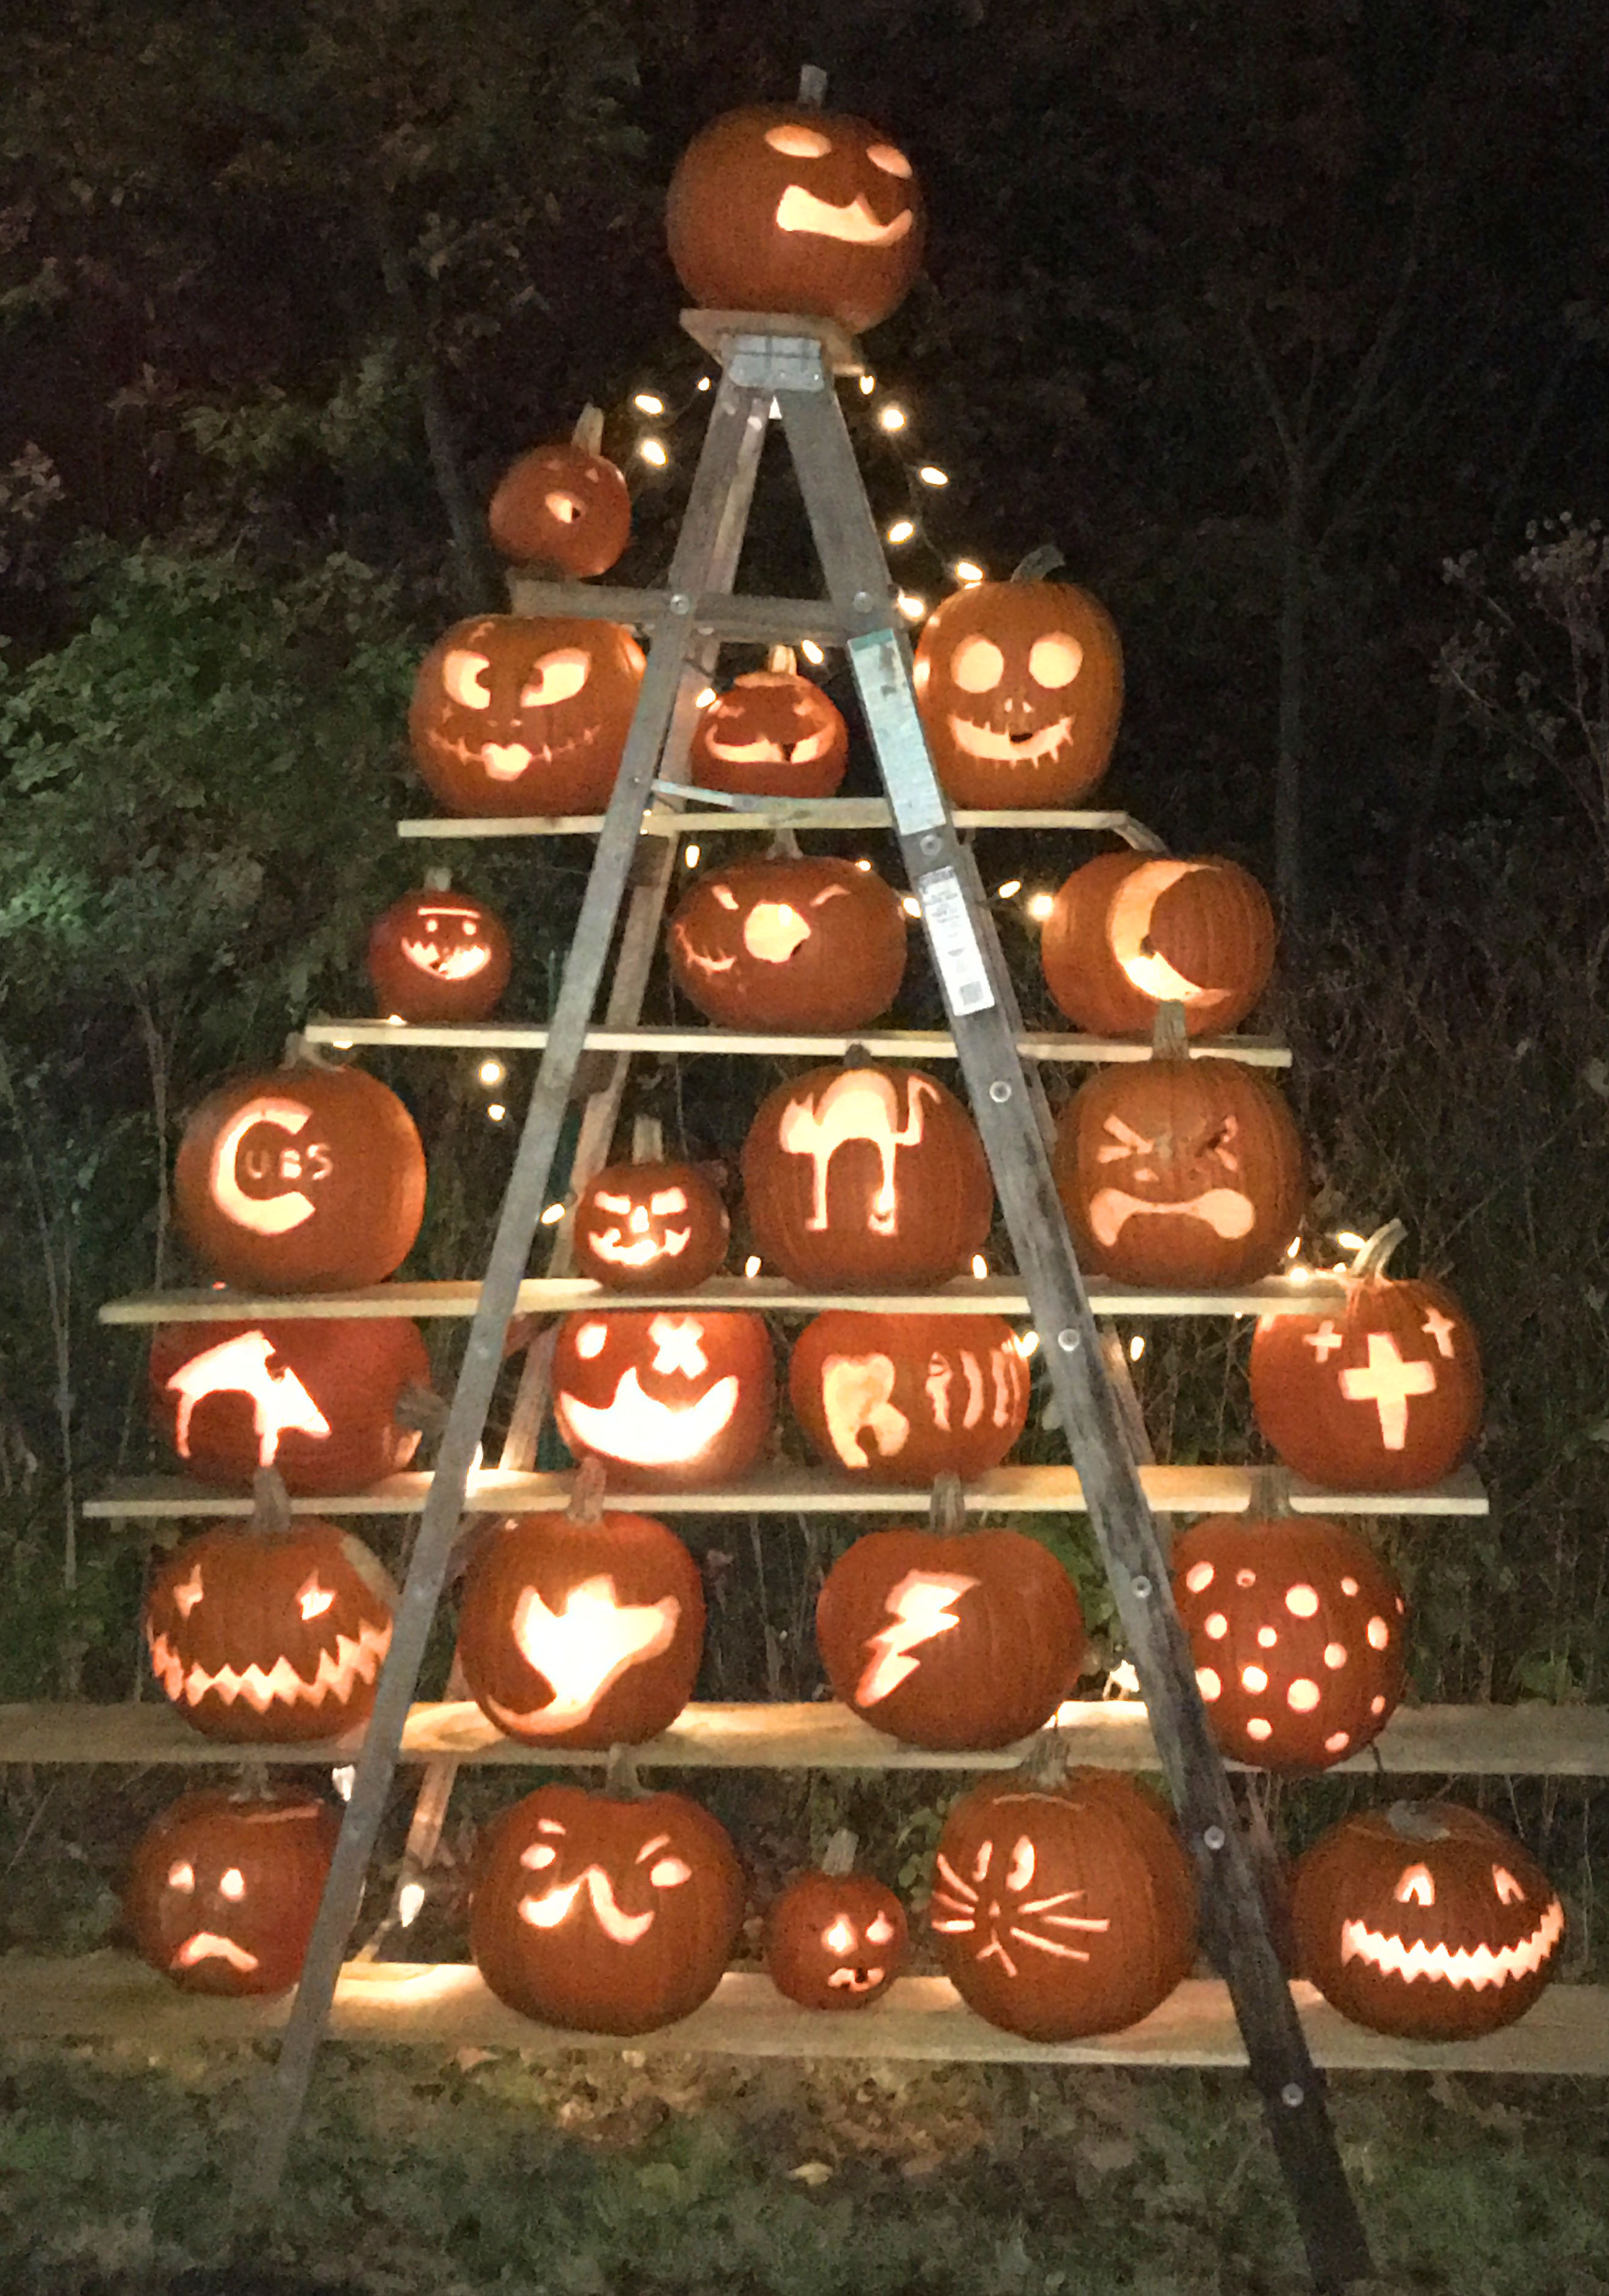 Long Grove merchants and residents worked together to create this display of hand-carved jack-o-lanterns welcoming those brave enough to experience Red Riding Hood's haunted trail.